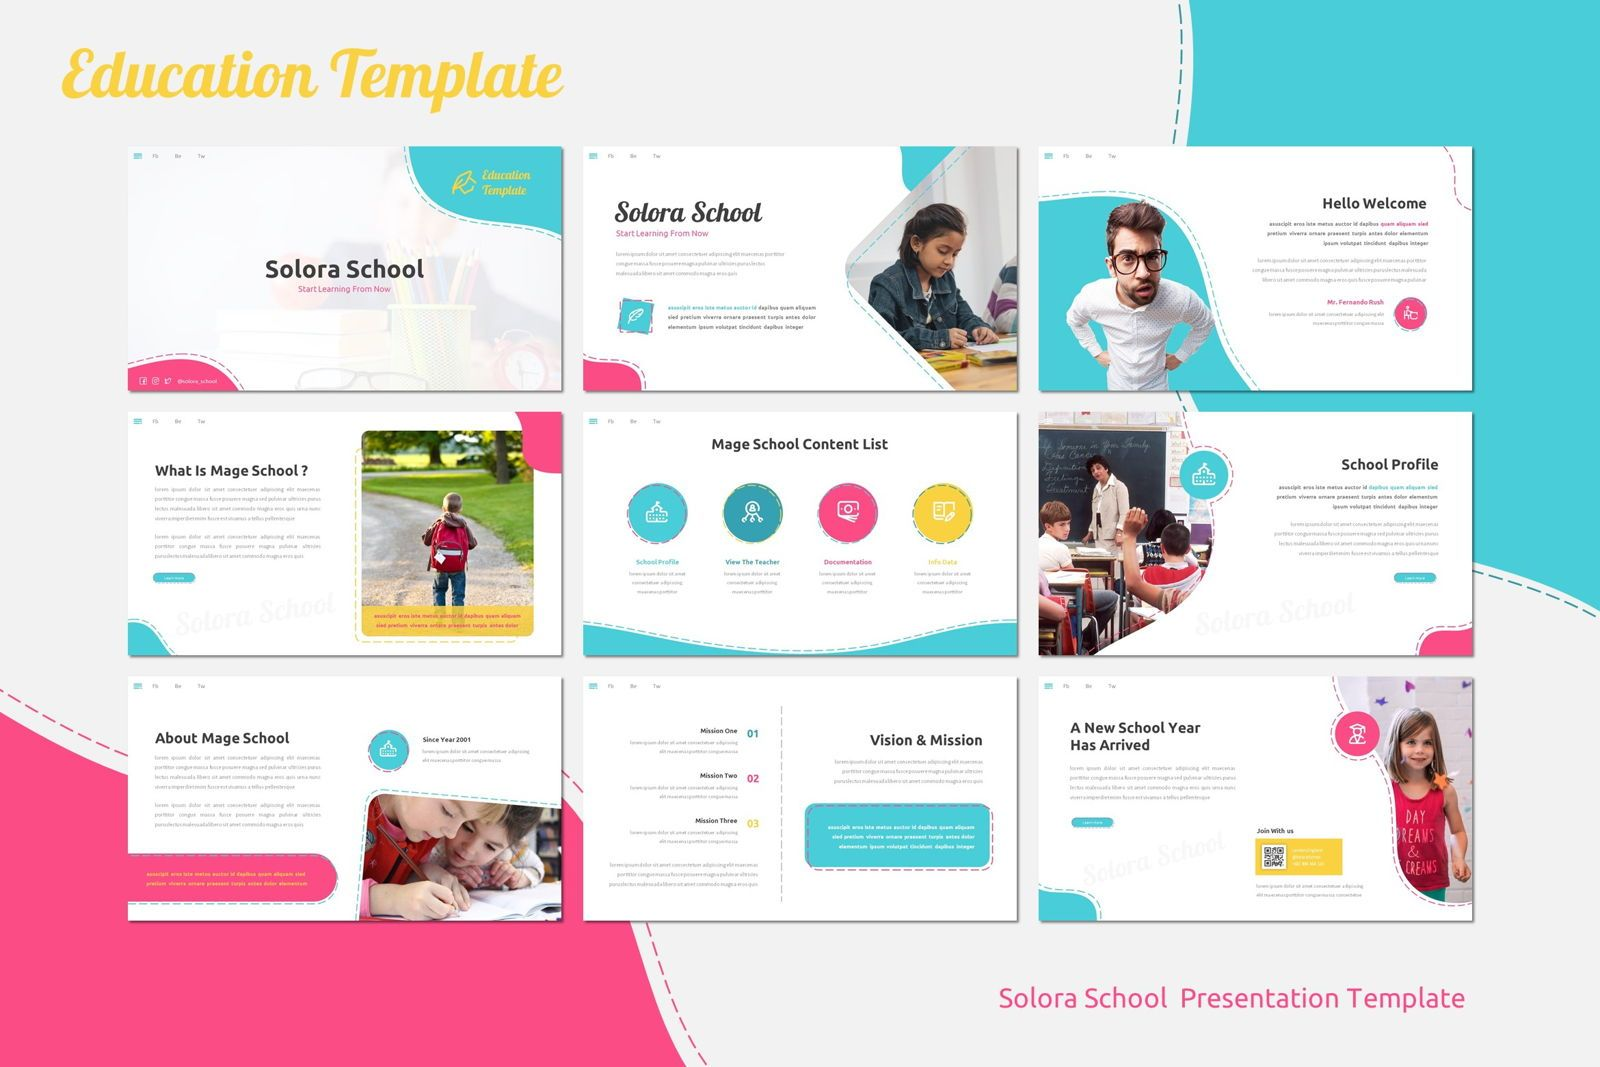 Solora School - Google Slides Template, Slide 2, 07767, Presentation Templates — PoweredTemplate.com